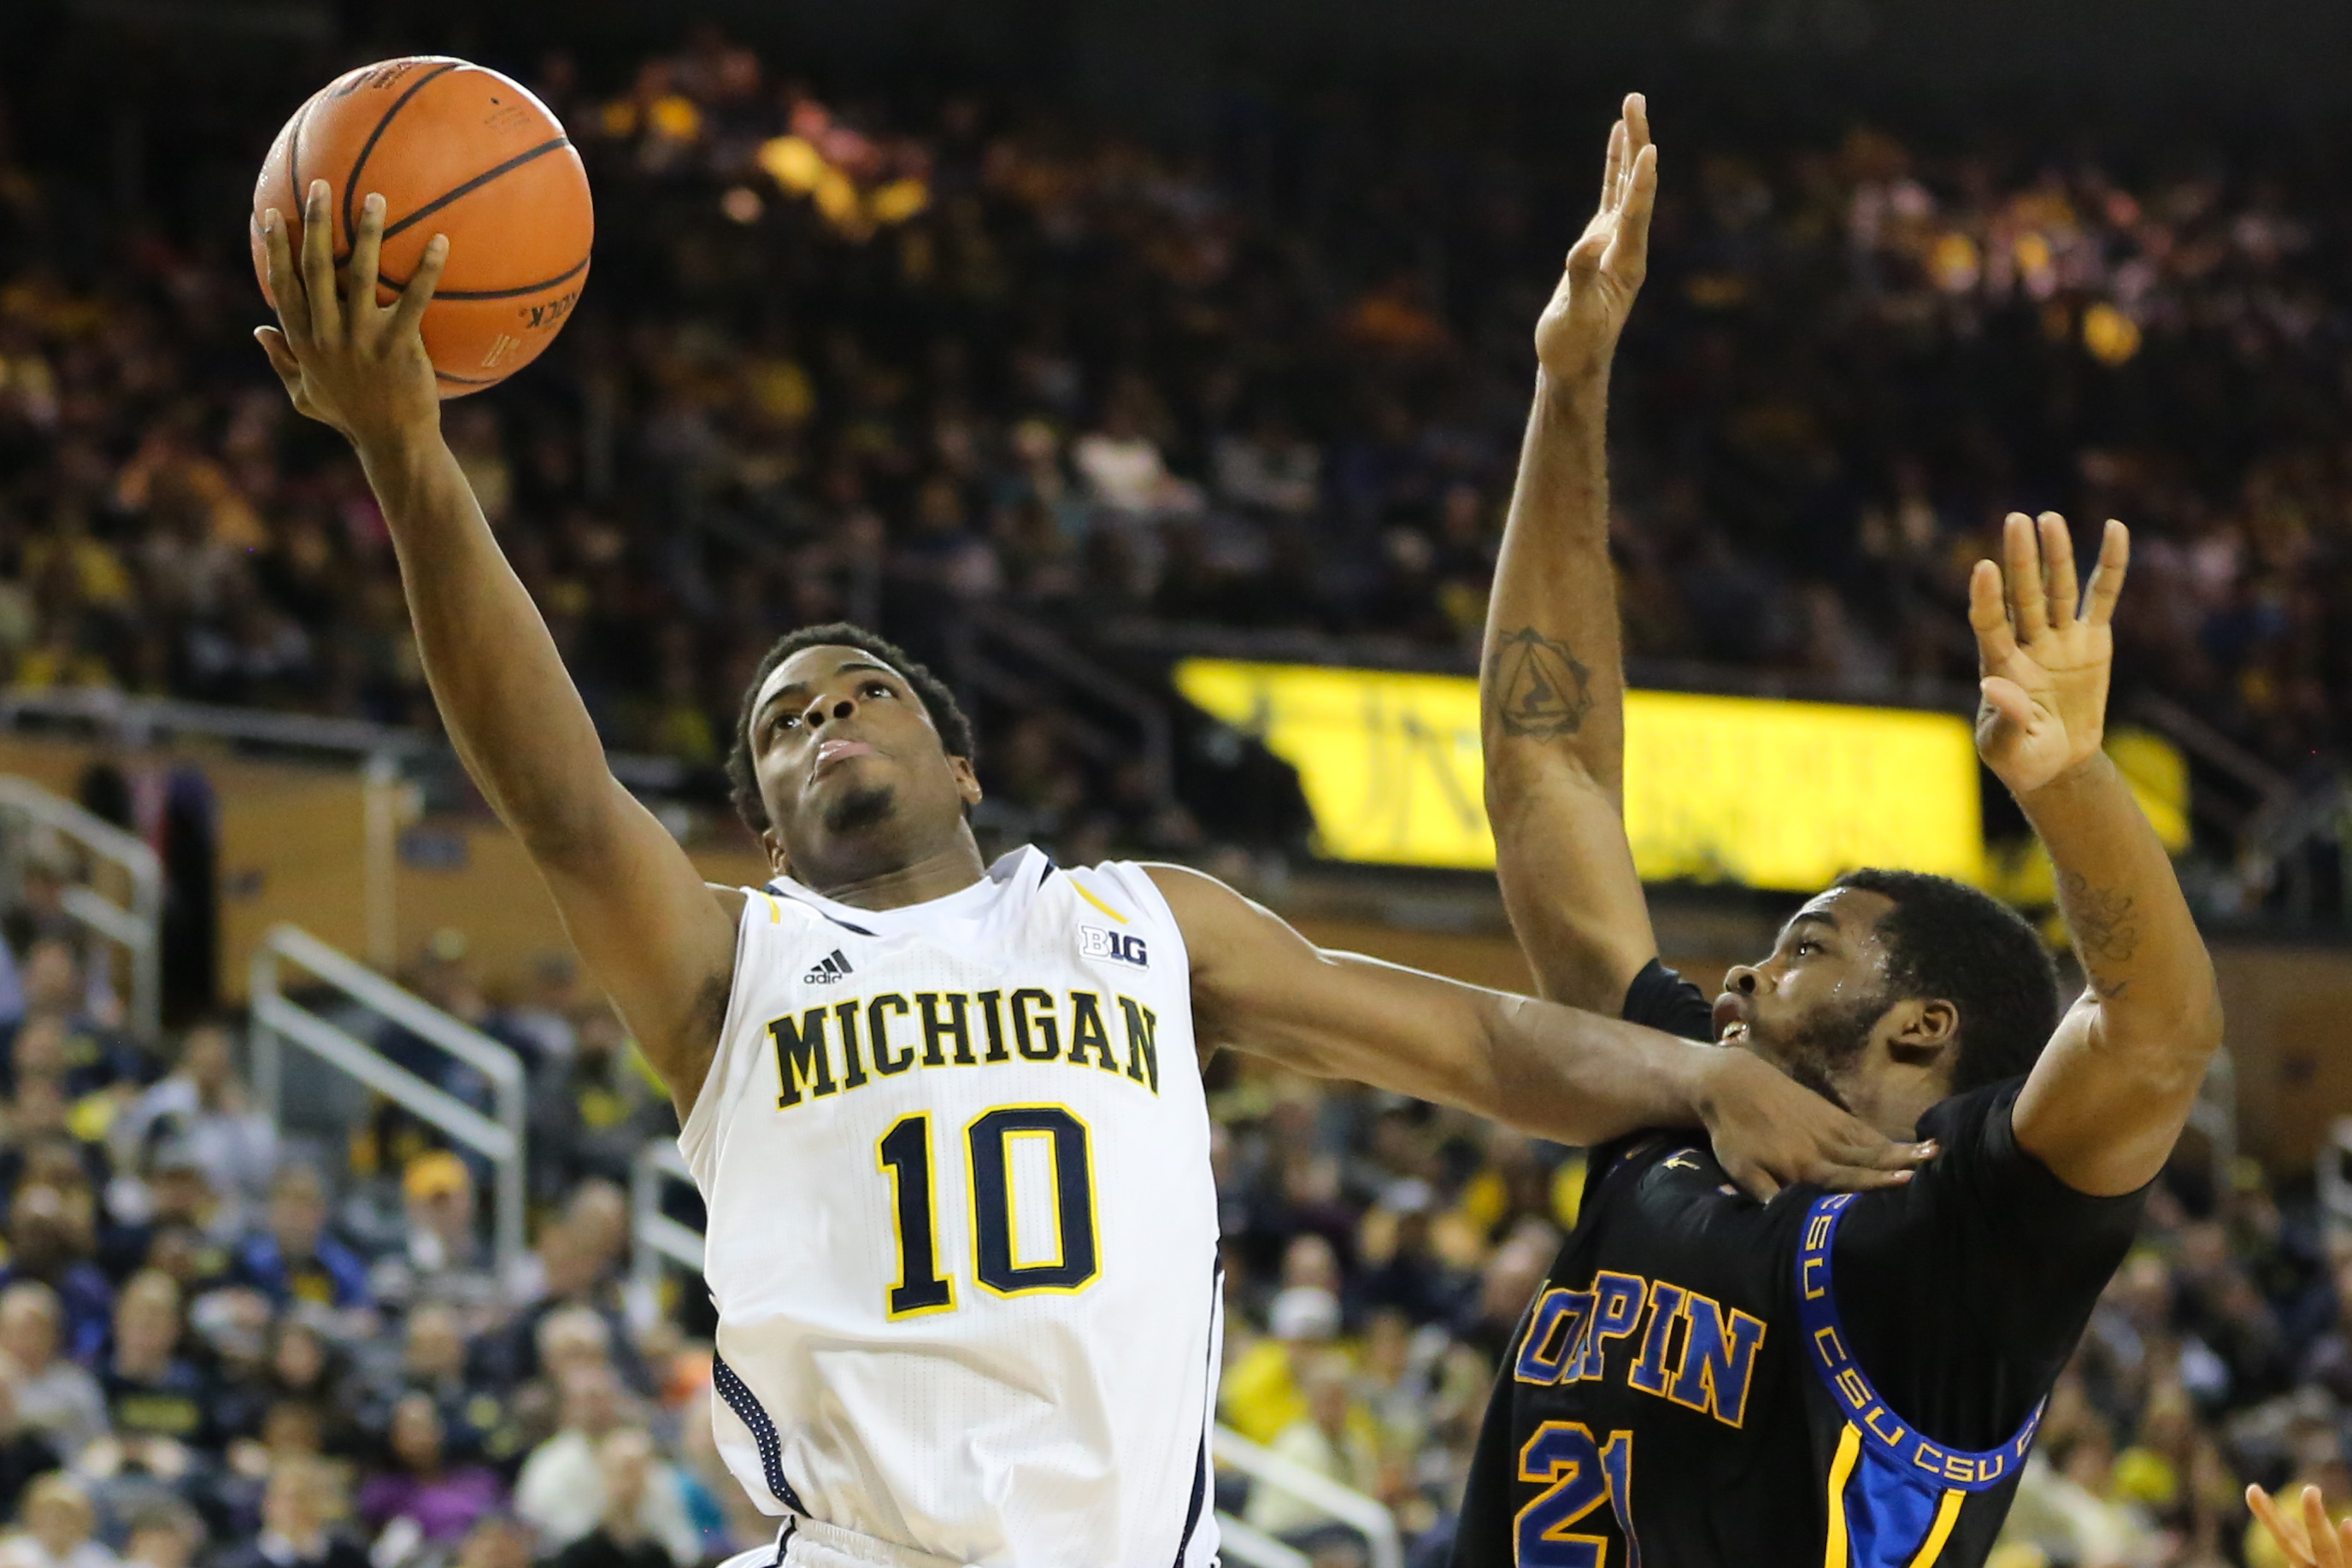 Michigan 87, Coppin State 45-23